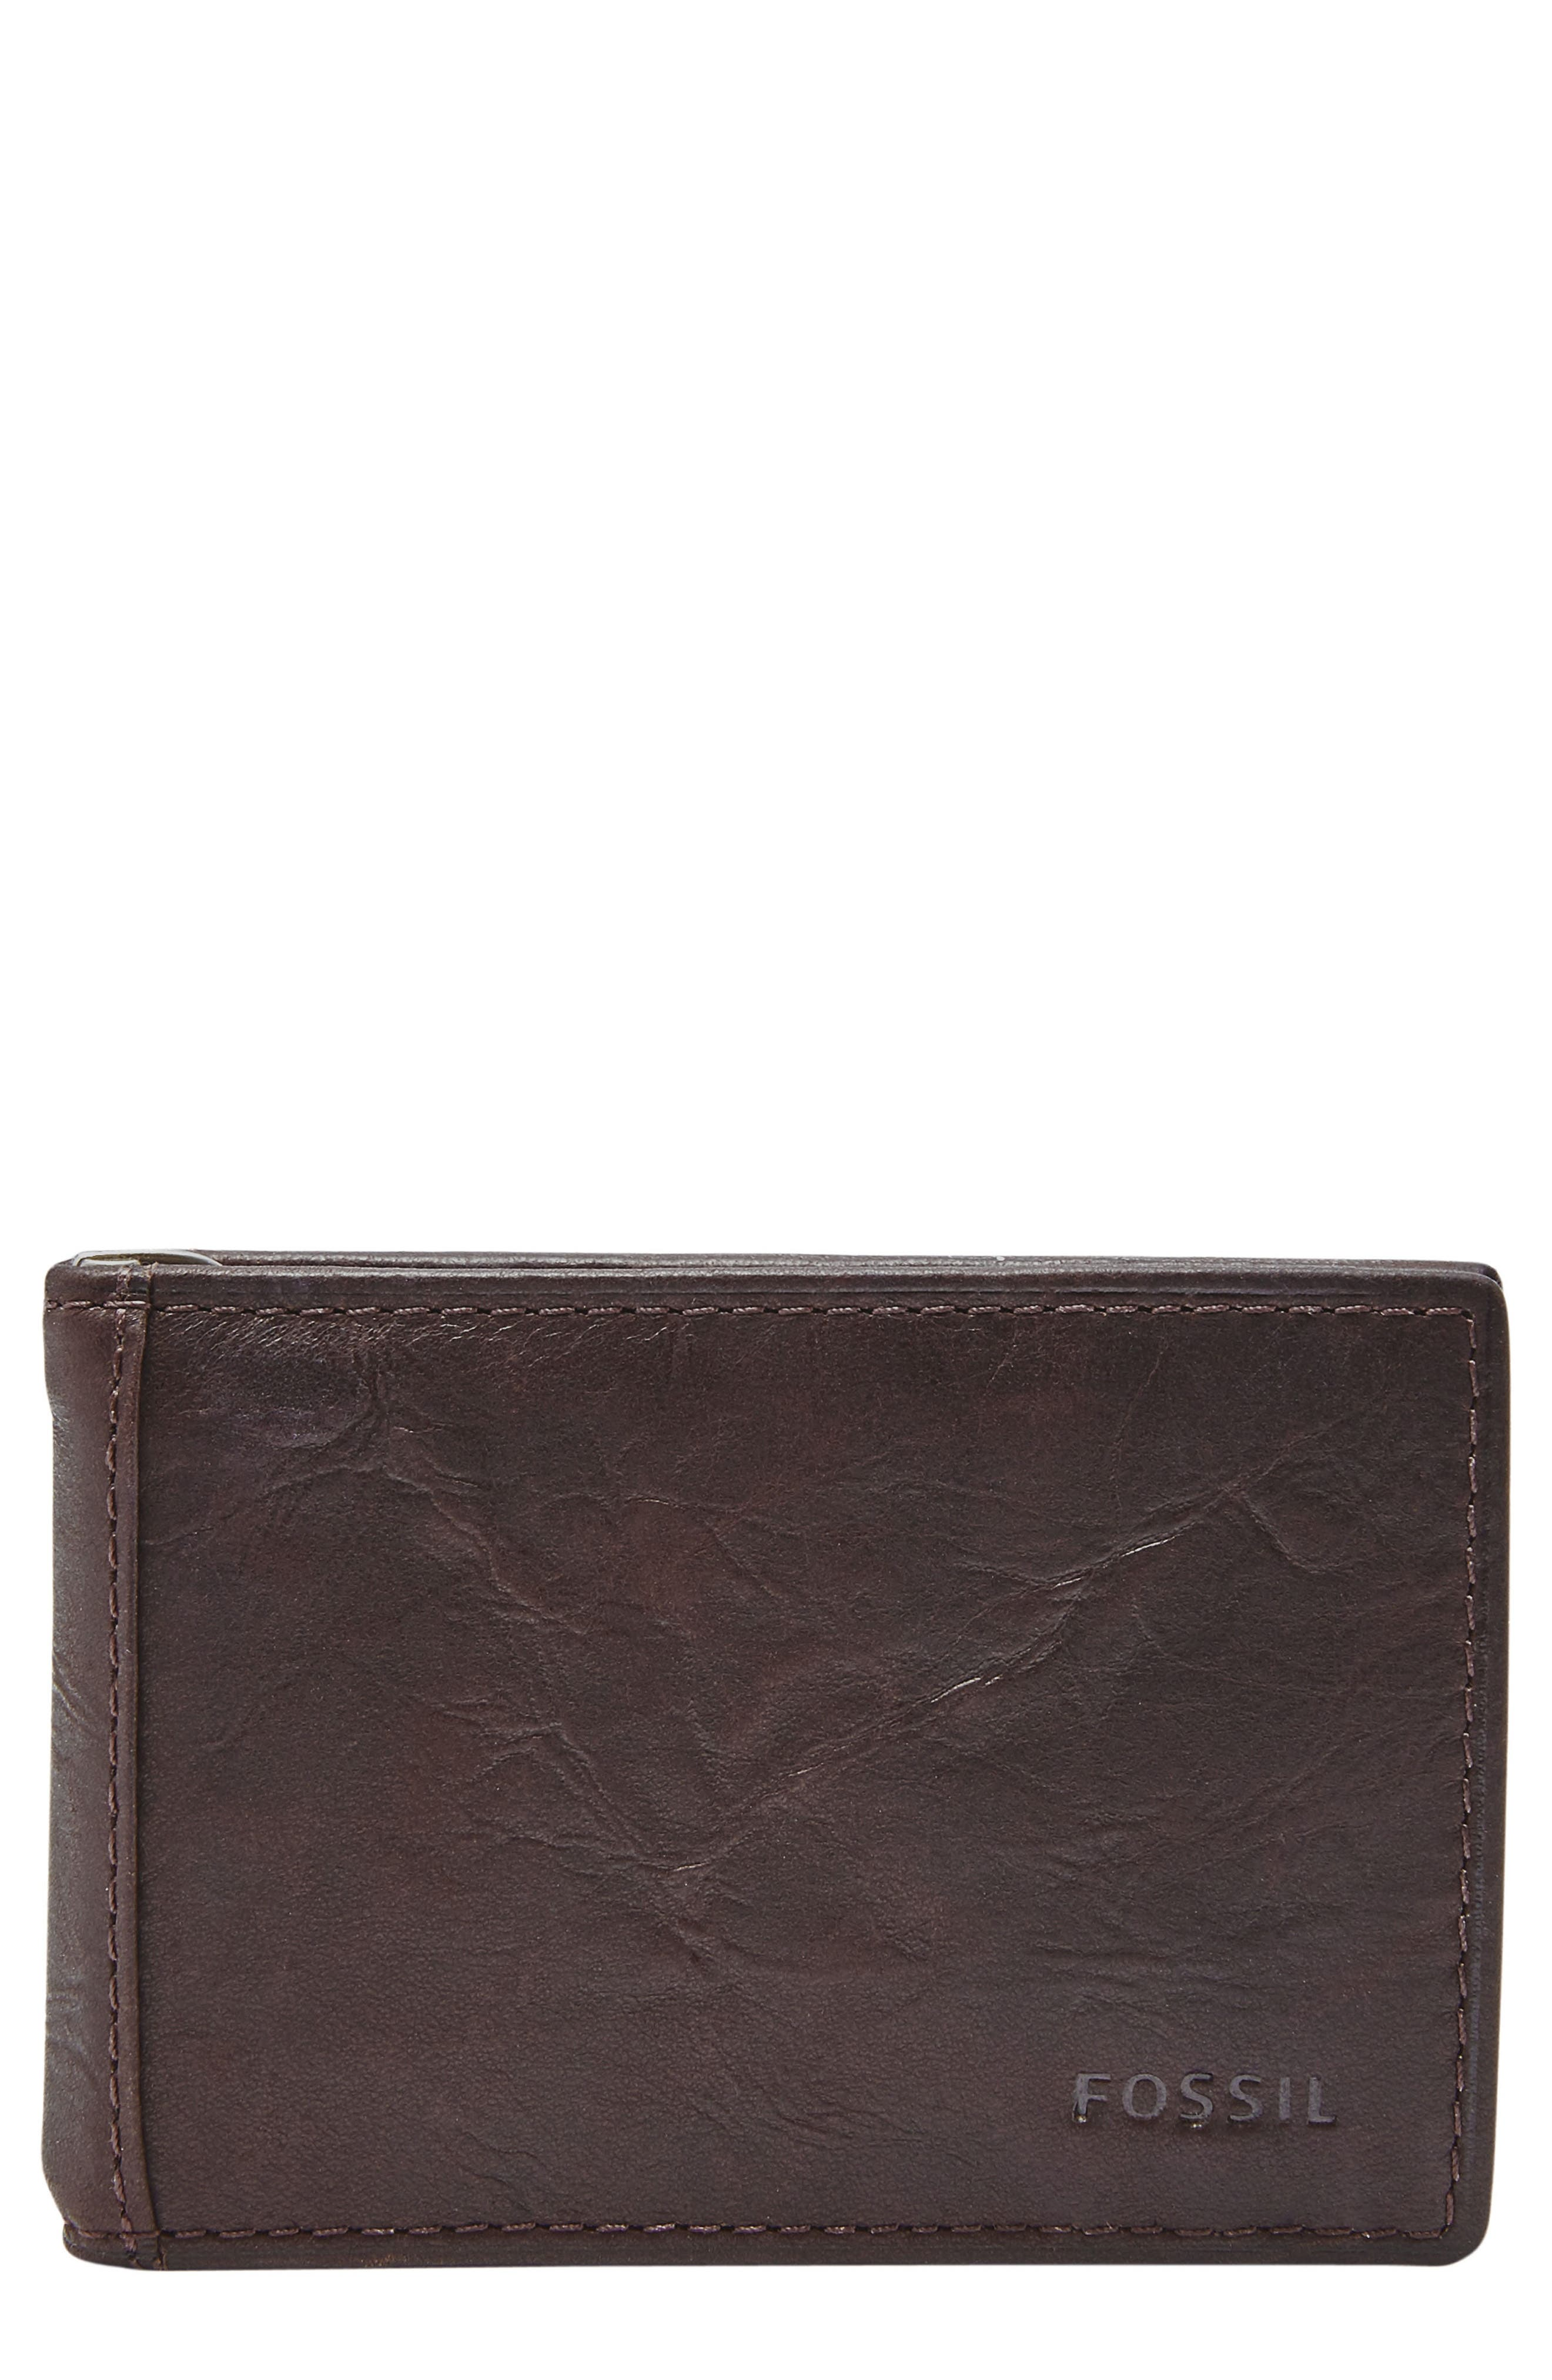 FOSSIL, Neel Leather Money Clip Wallet, Main thumbnail 1, color, BROWN